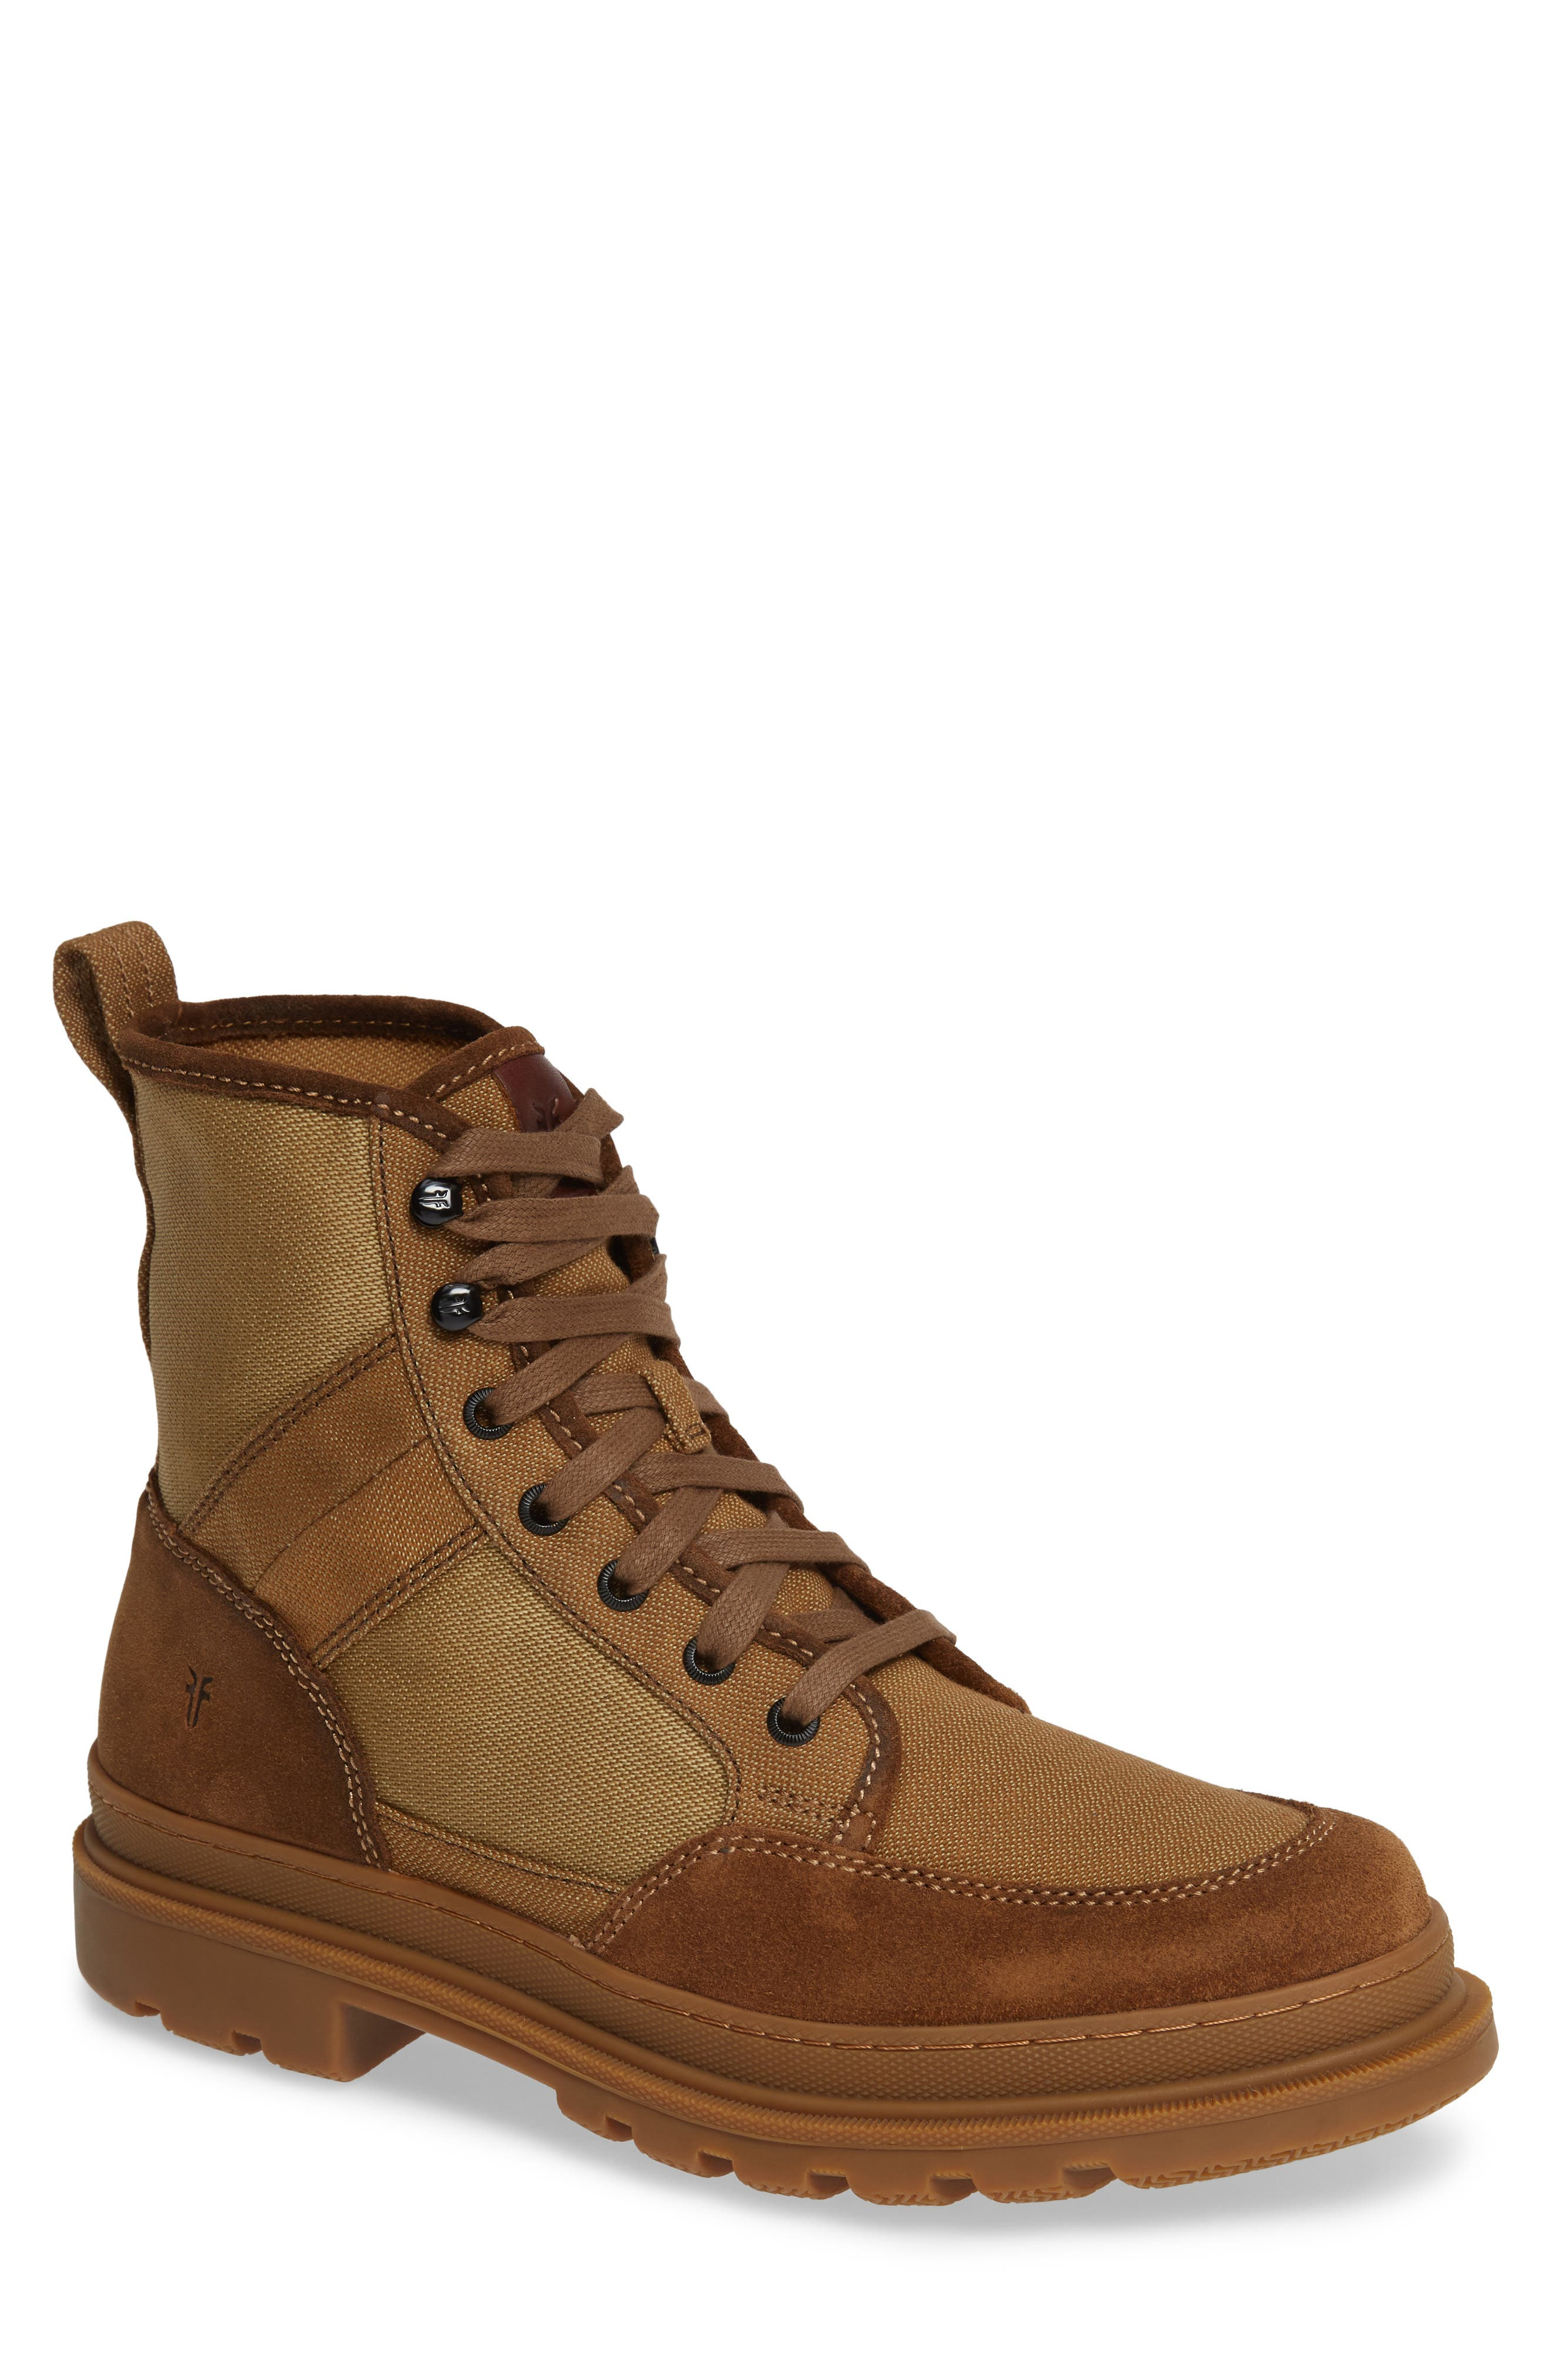 Scout Boot,                             Main thumbnail 1, color,                             TAUPE